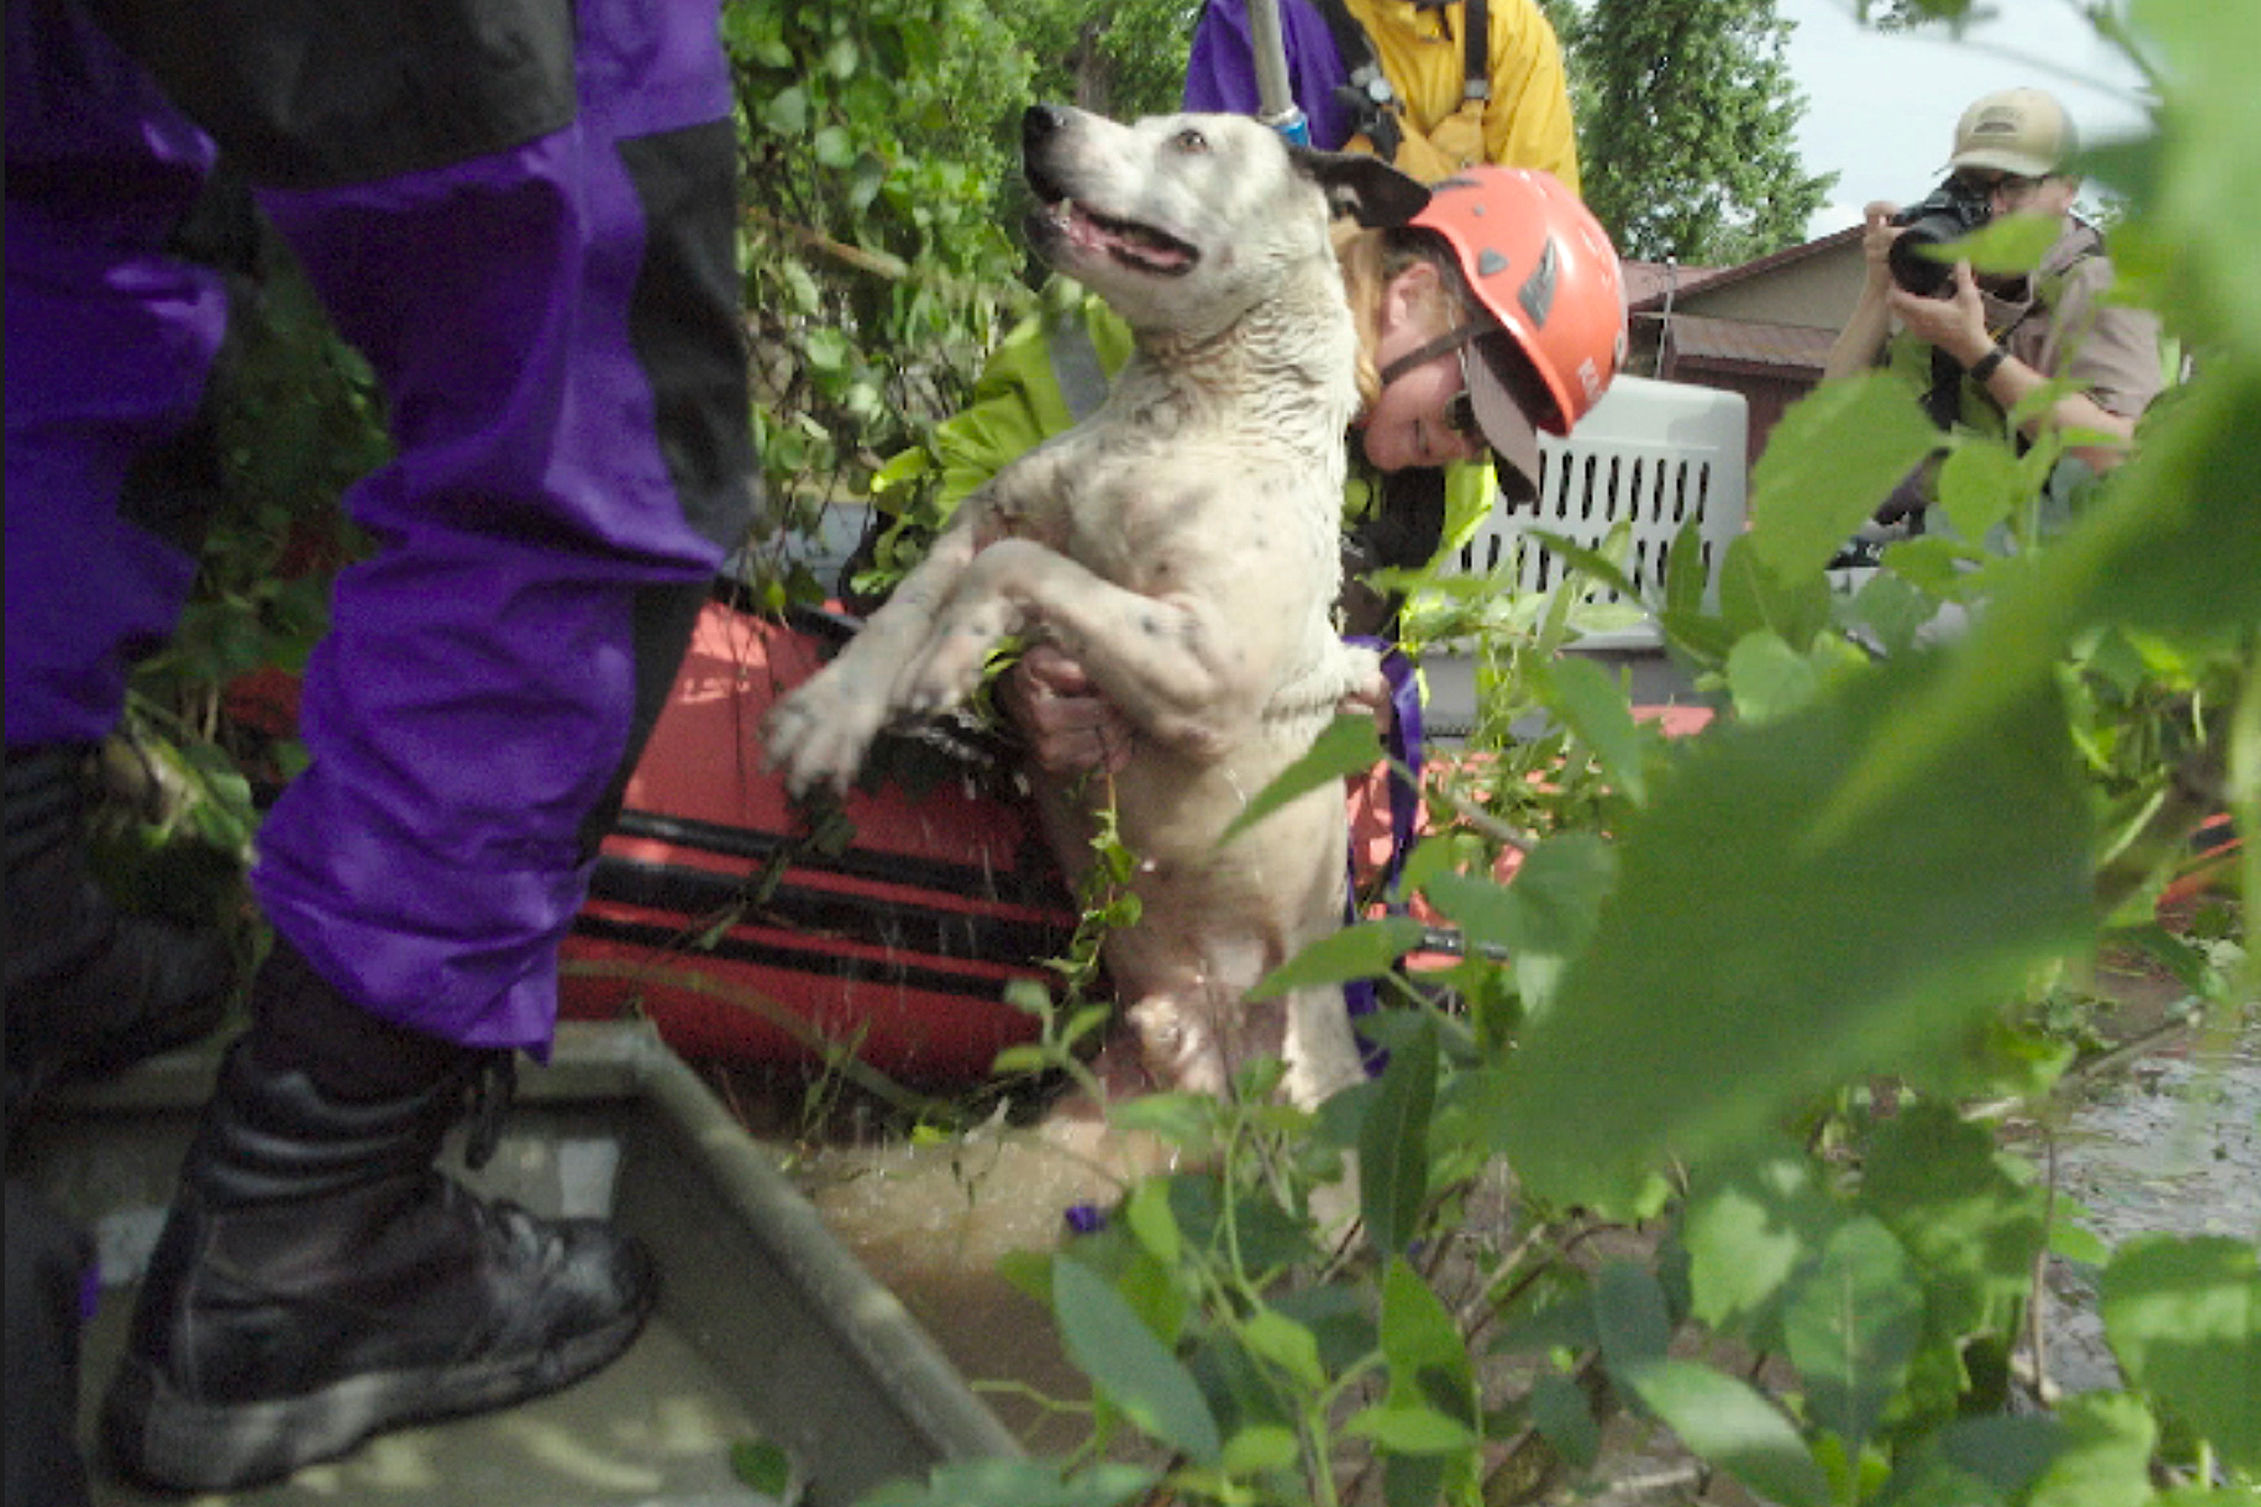 Rescuers Brave Oklahoma Floods to Save Dog 'Clinging for Life' to Tree Stuck in 12-Ft. of Water